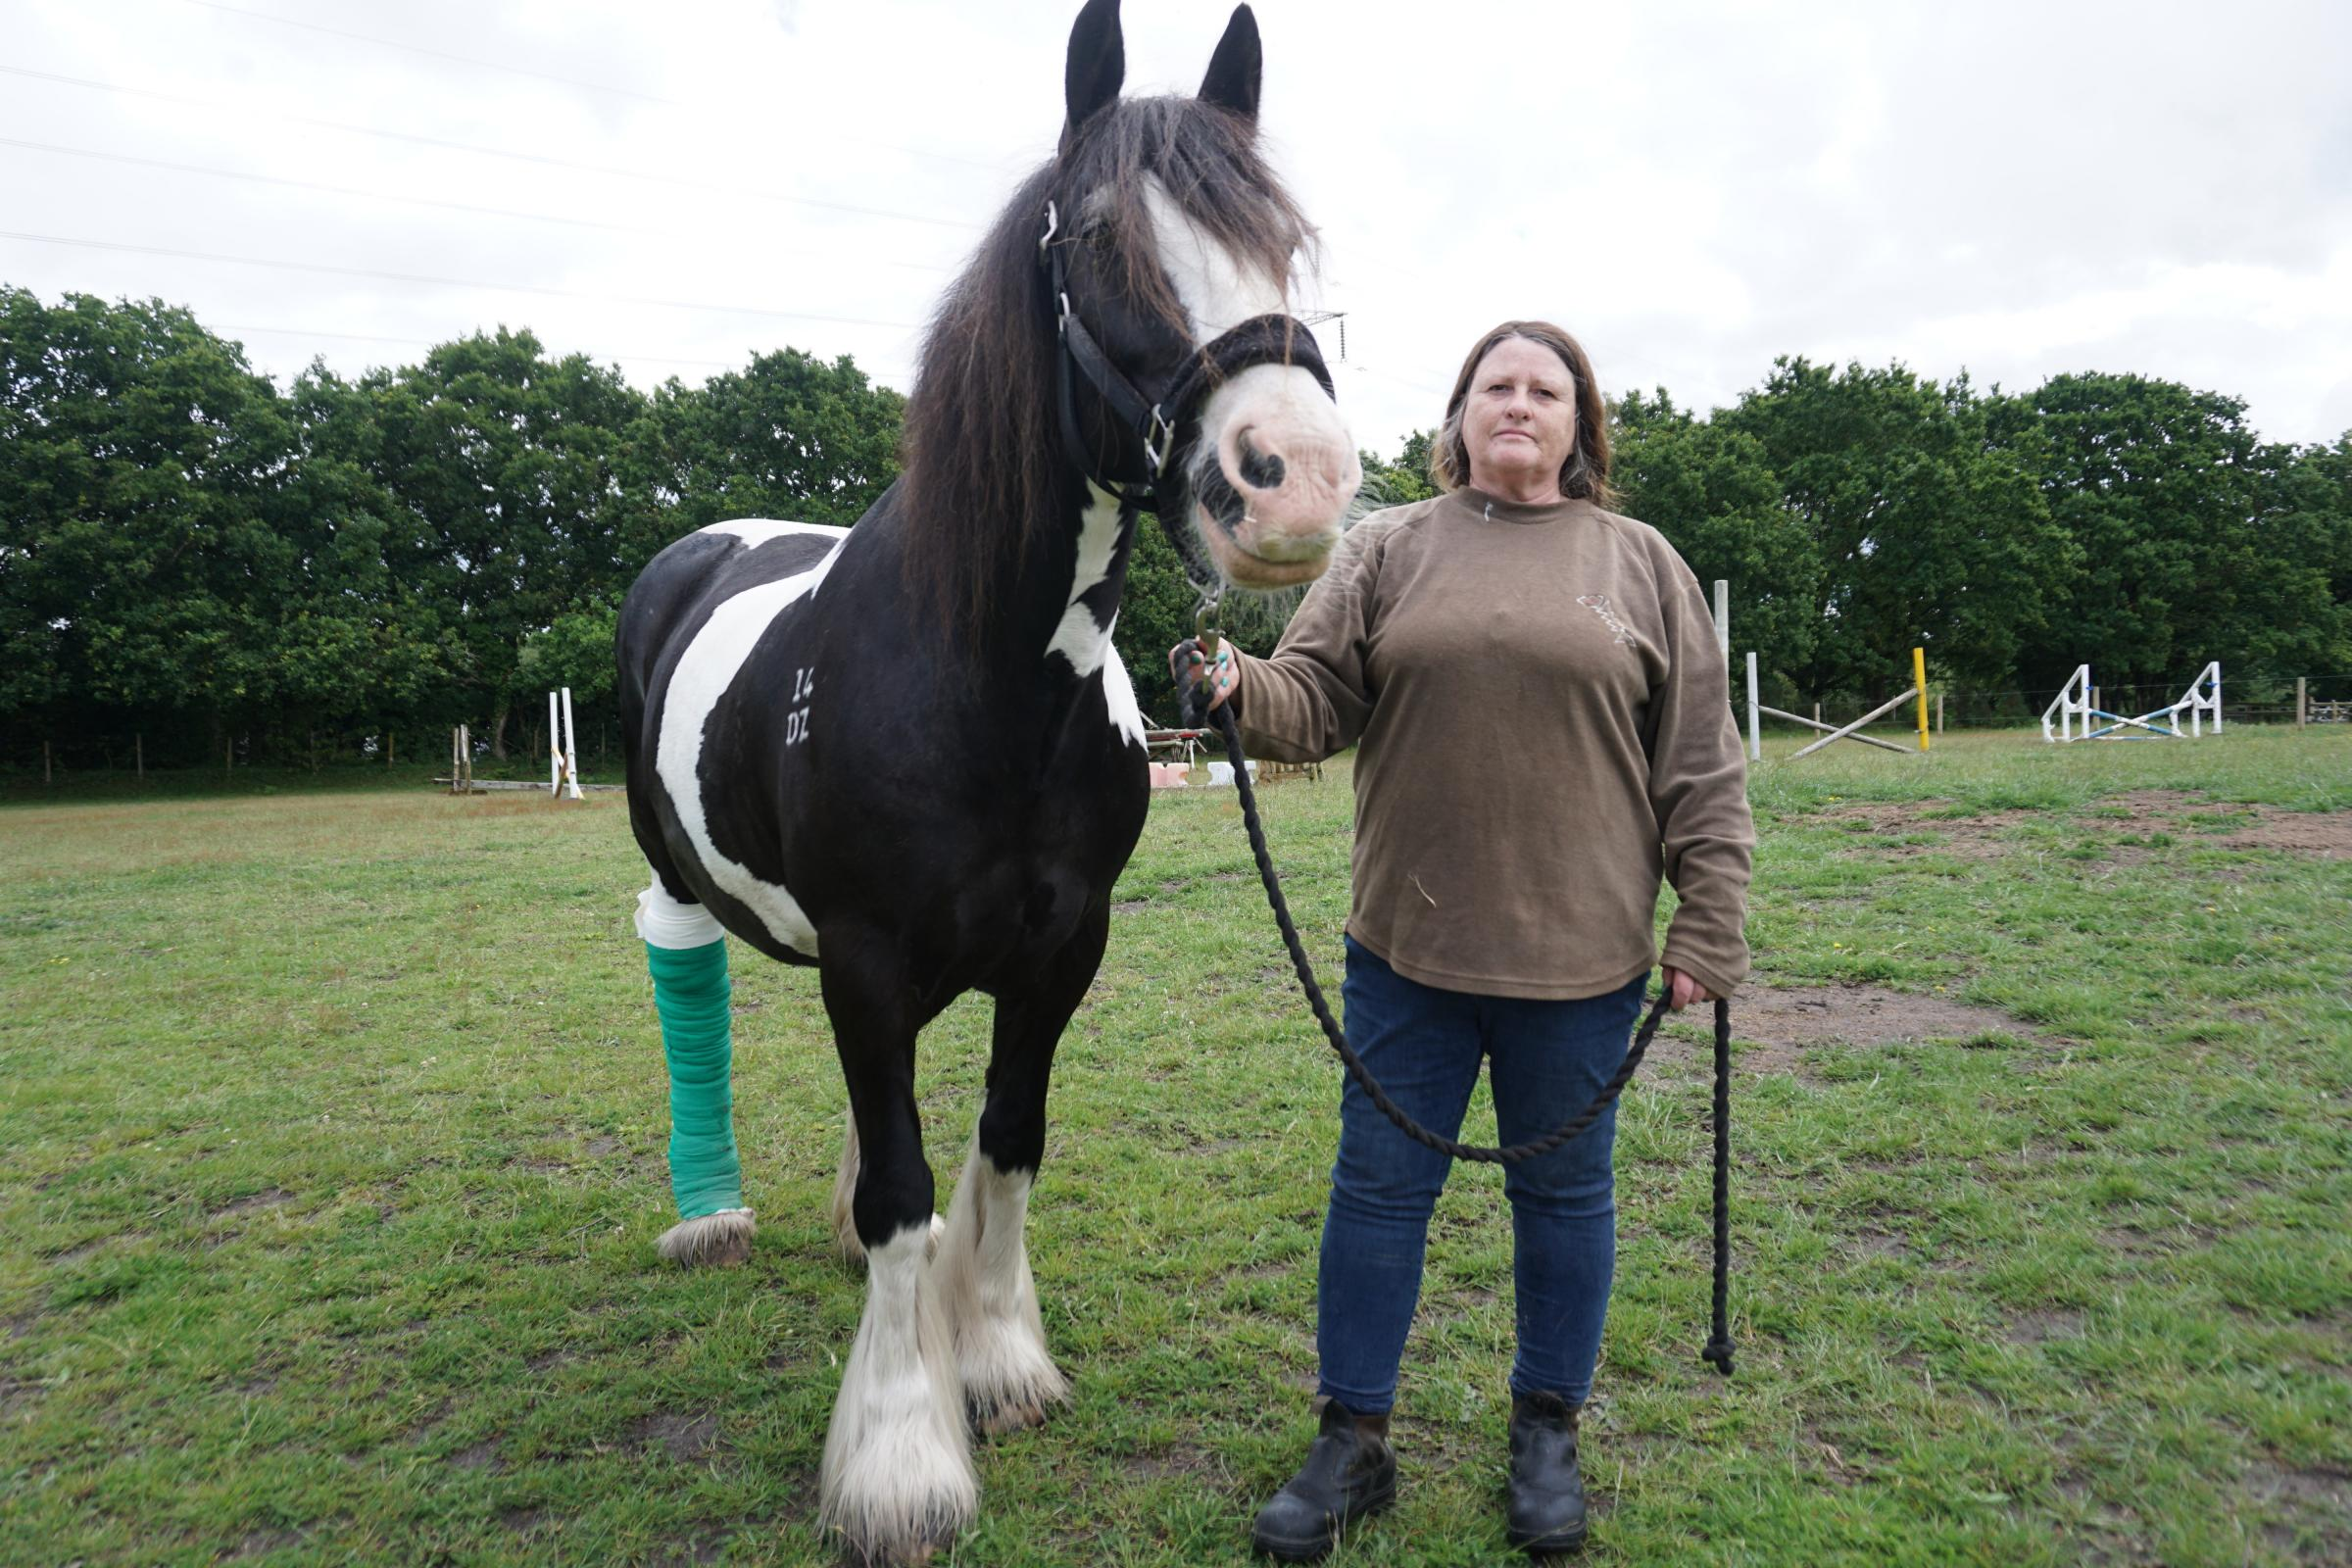 Horse rider wants to track down owner of 'dangerous' dog which attacked mare in West Moors